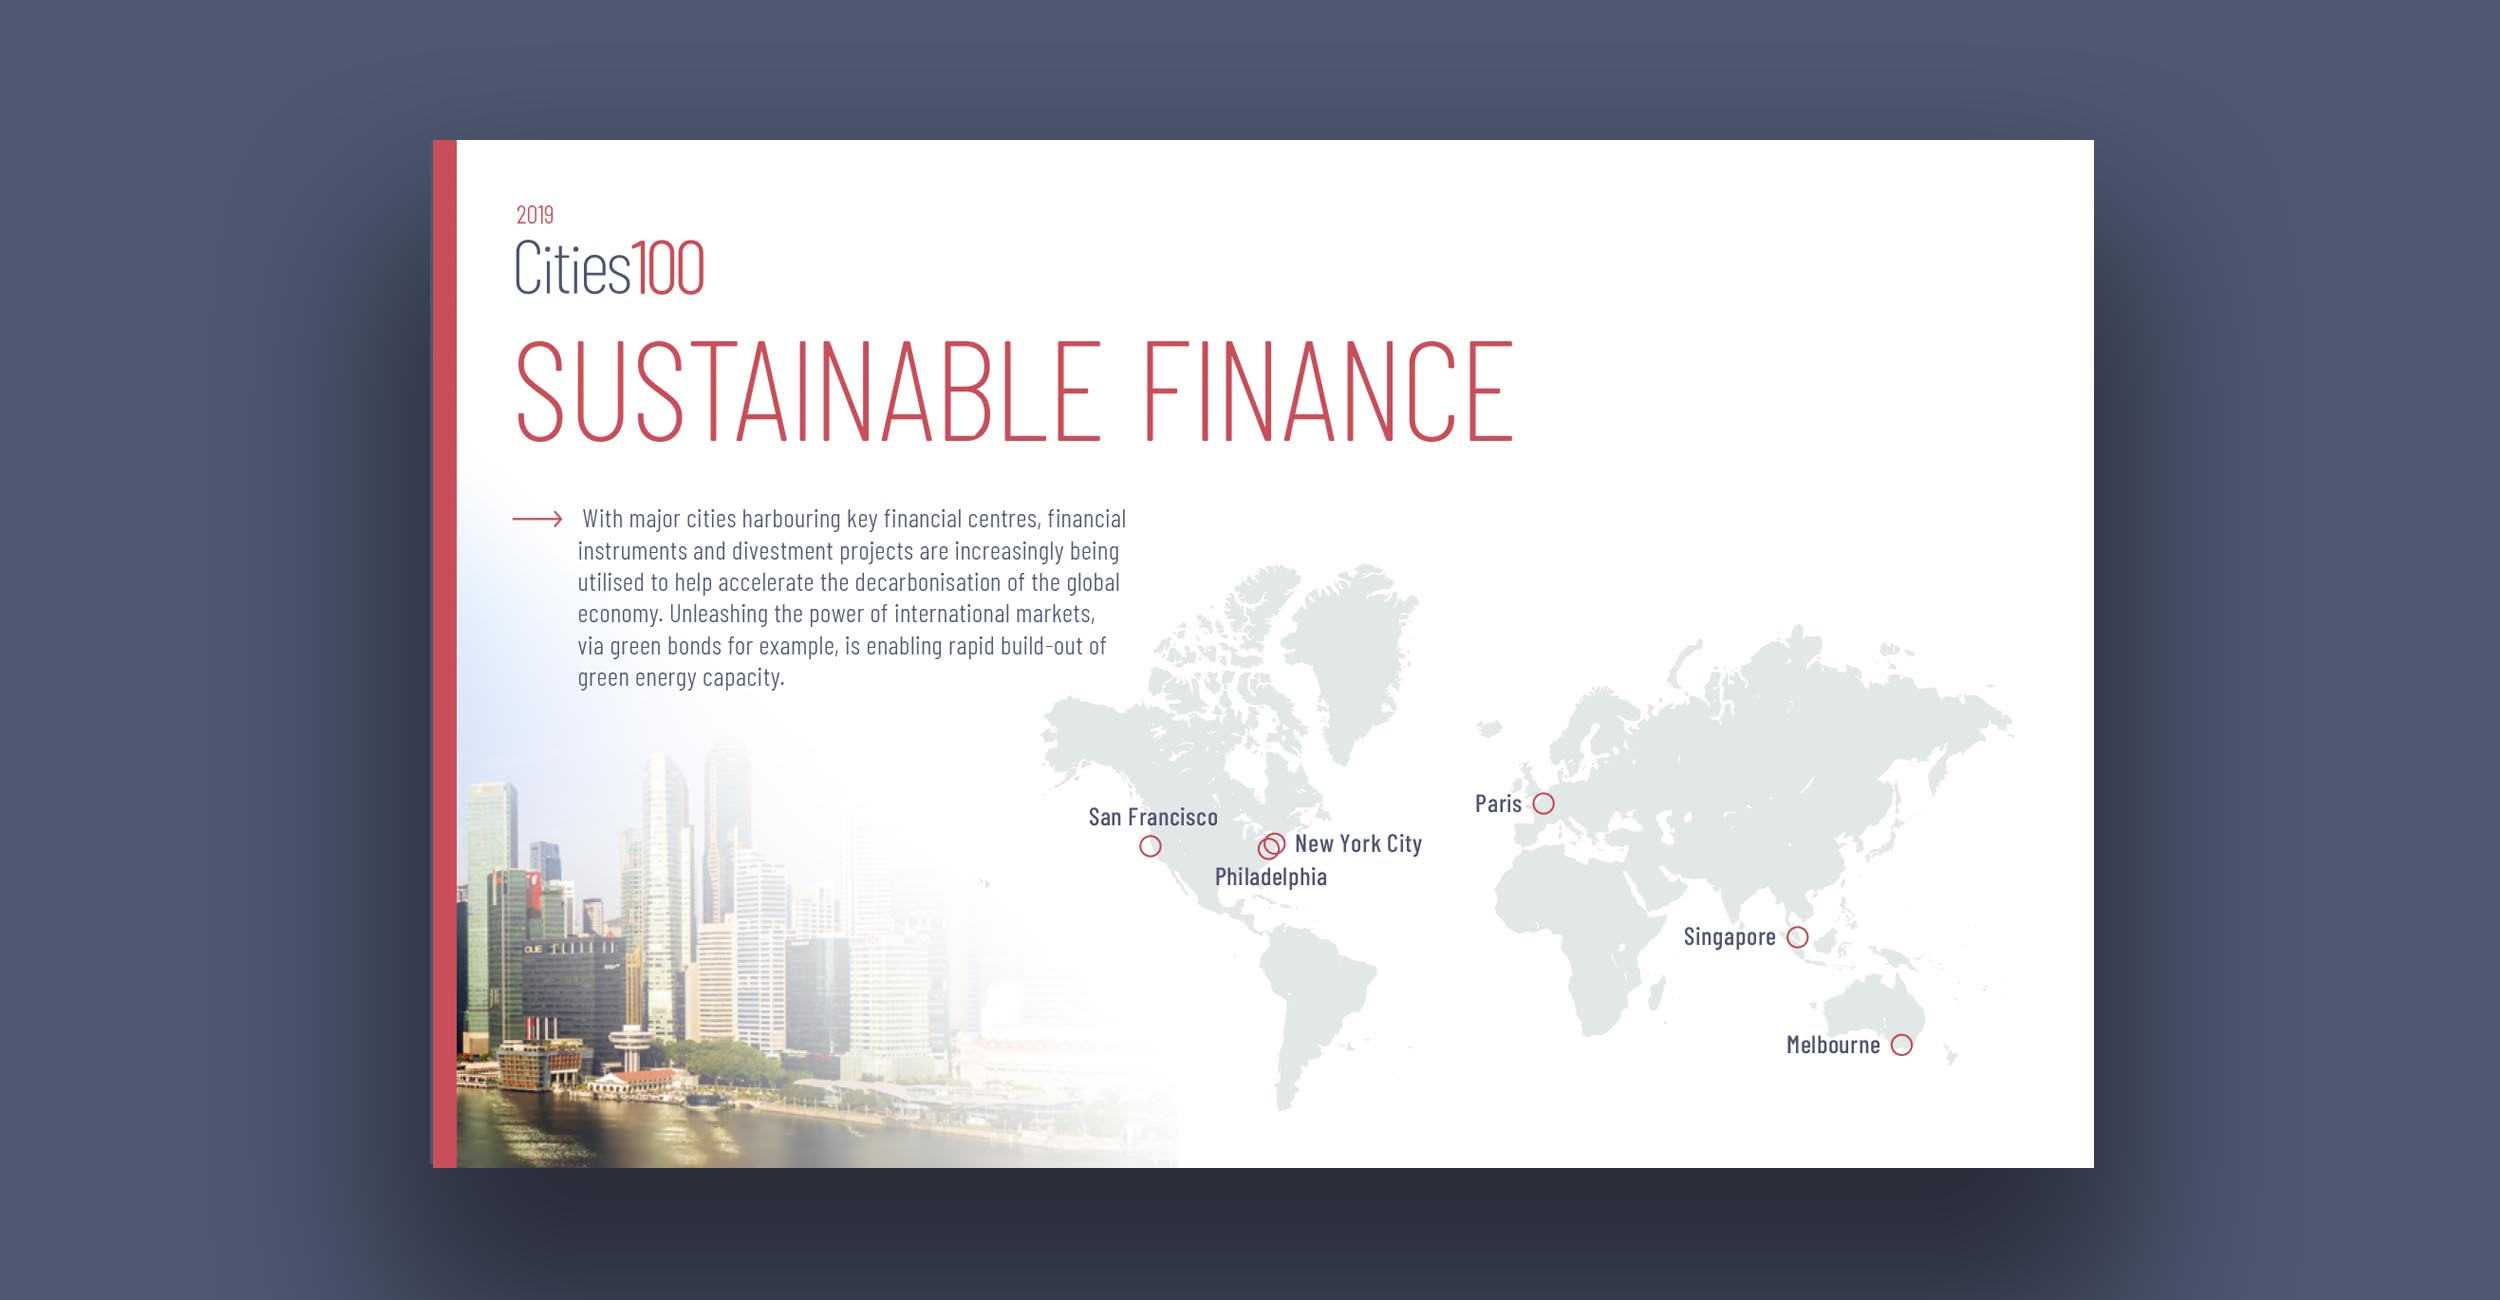 Sustainable Finance - With major cities harbouring key financial centres, financial instruments and divestment projects are increasingly being utilised to help accelerate the decarbonisation of the global economy. Unleashing the power of international markets, via green bonds for example, is enabling rapid build-out of green energy capacity.